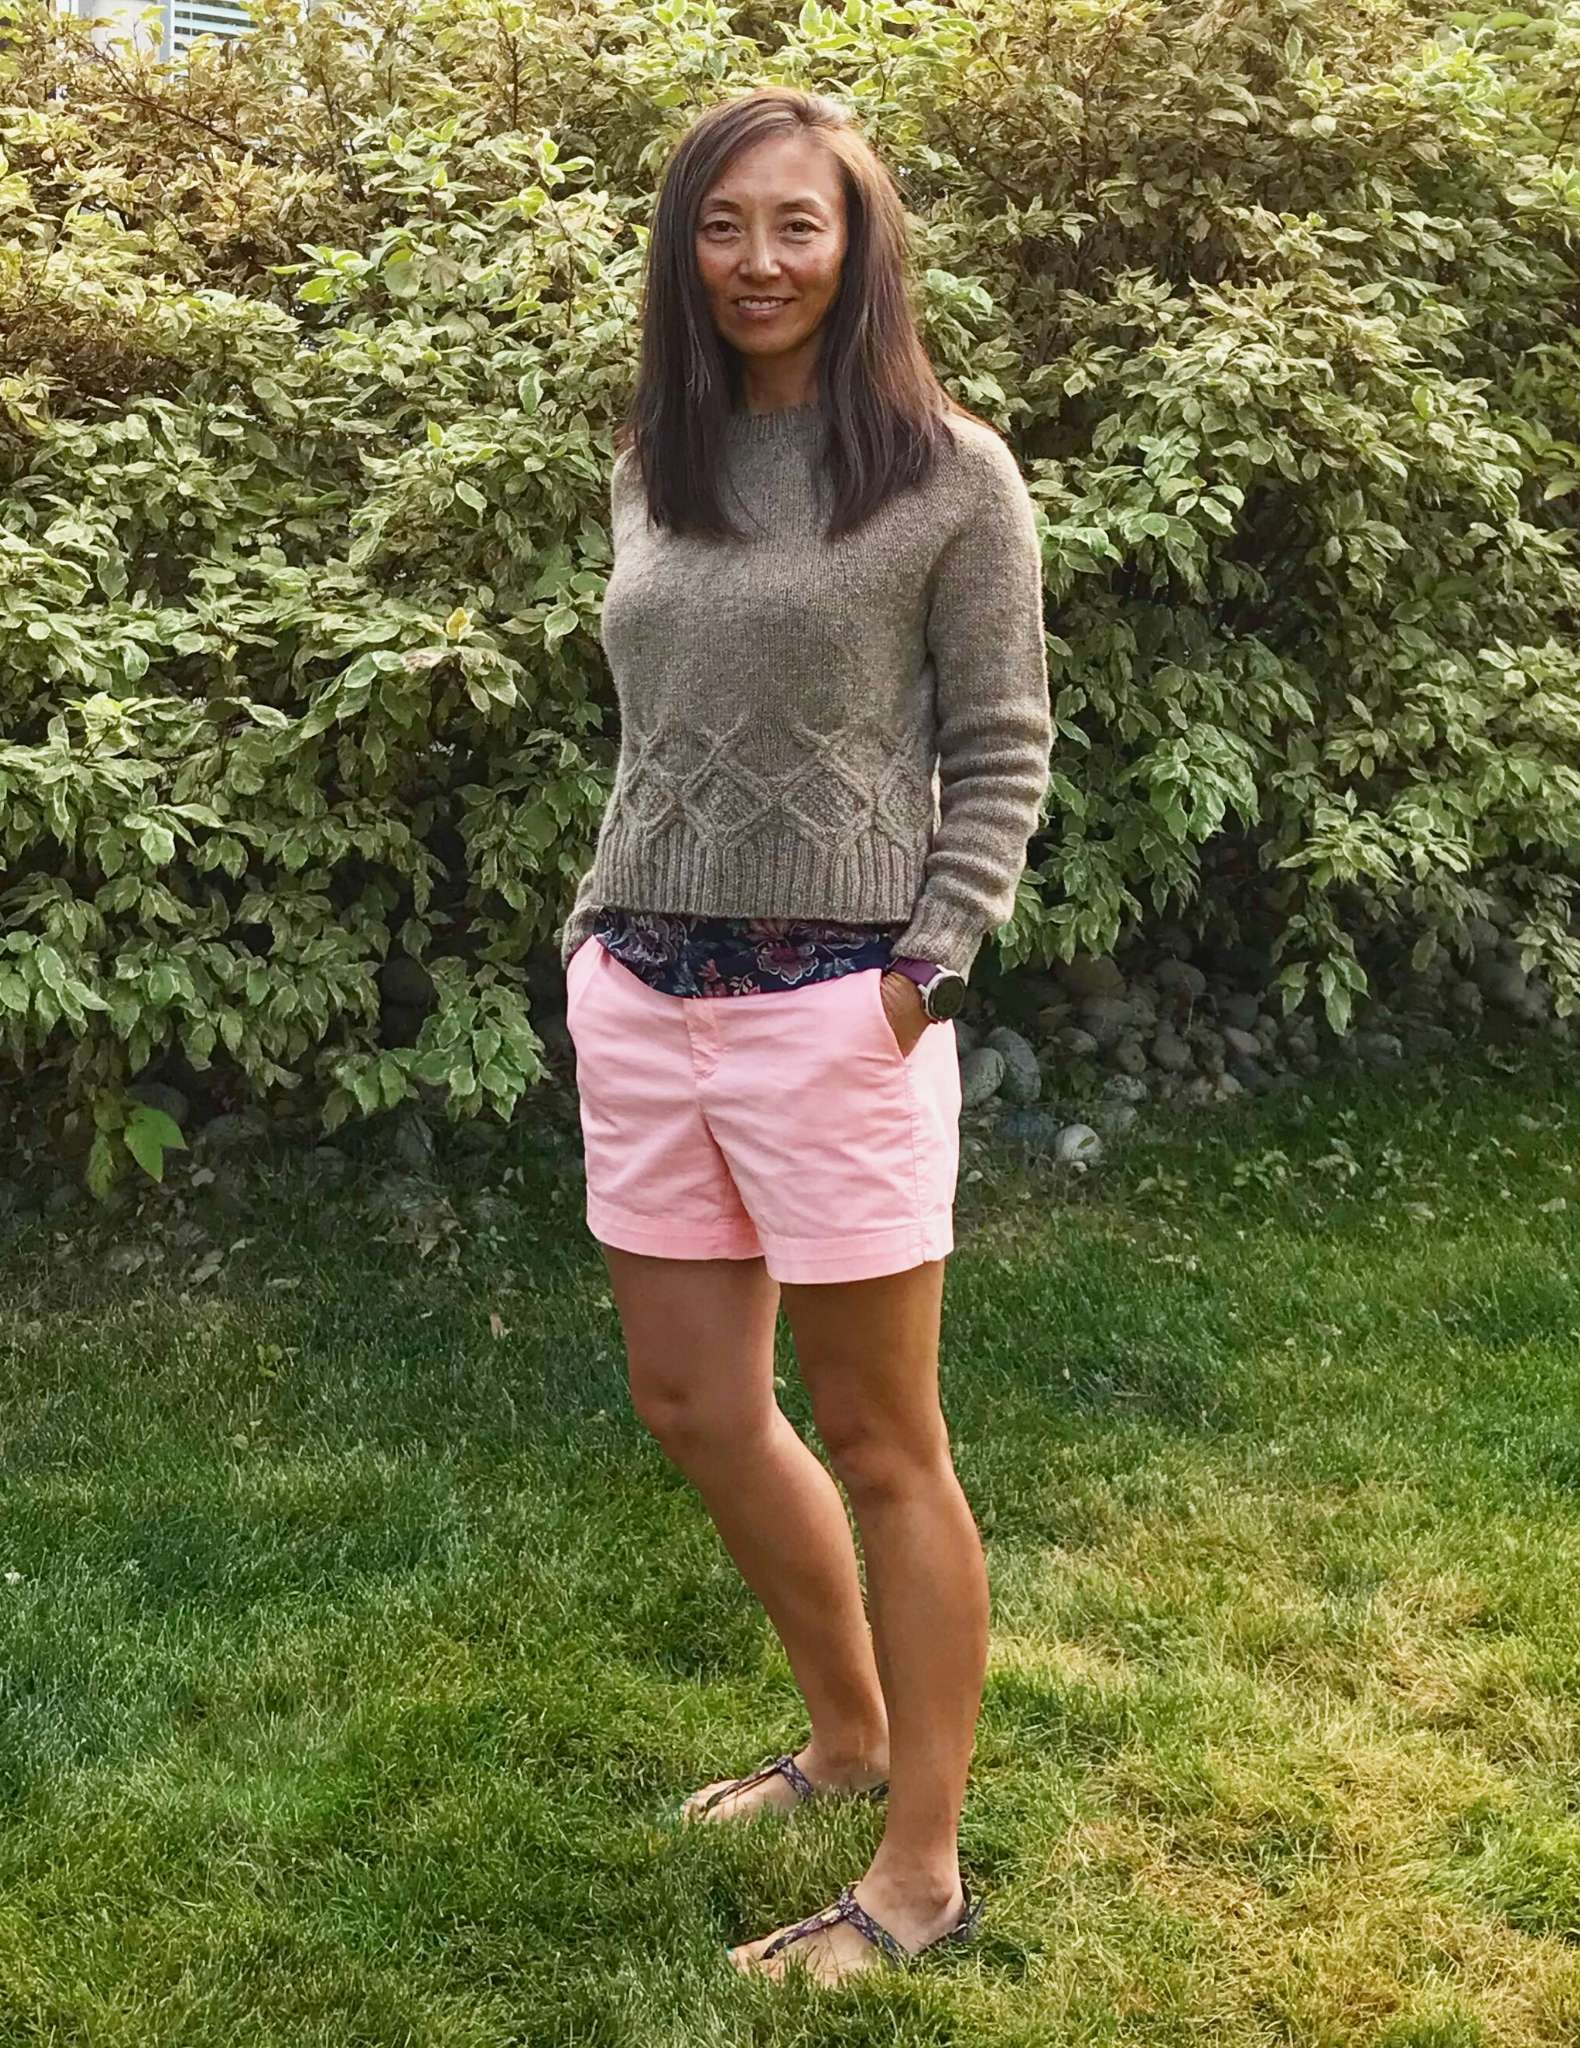 asian model with olive skin standing on grass wears neutral coloured sweater and pink shorts